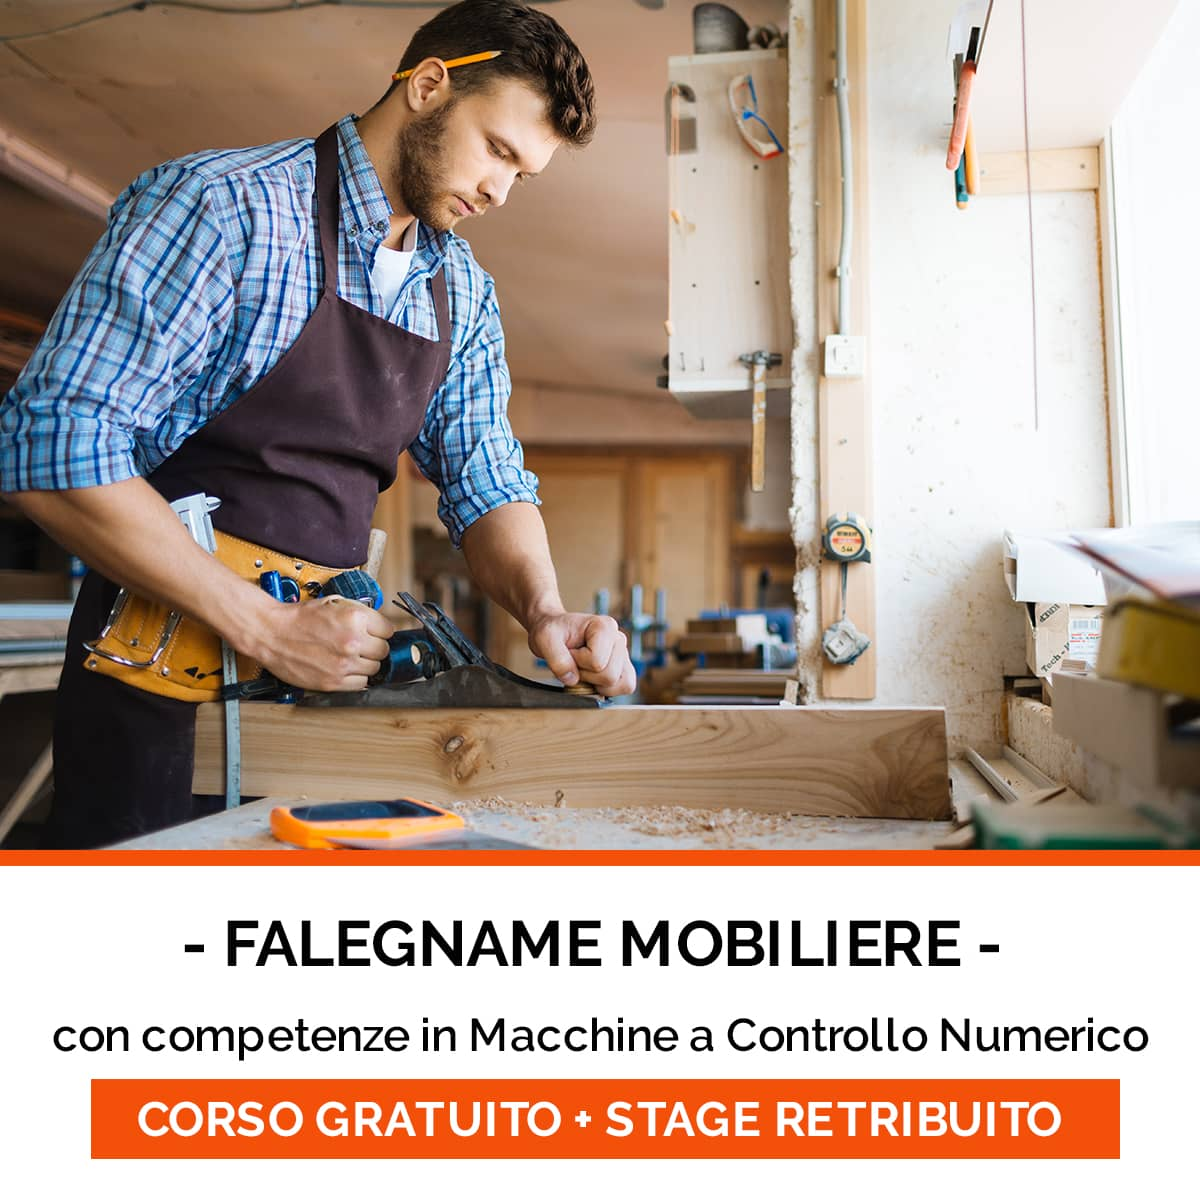 FALEGNAME MOBILIERE